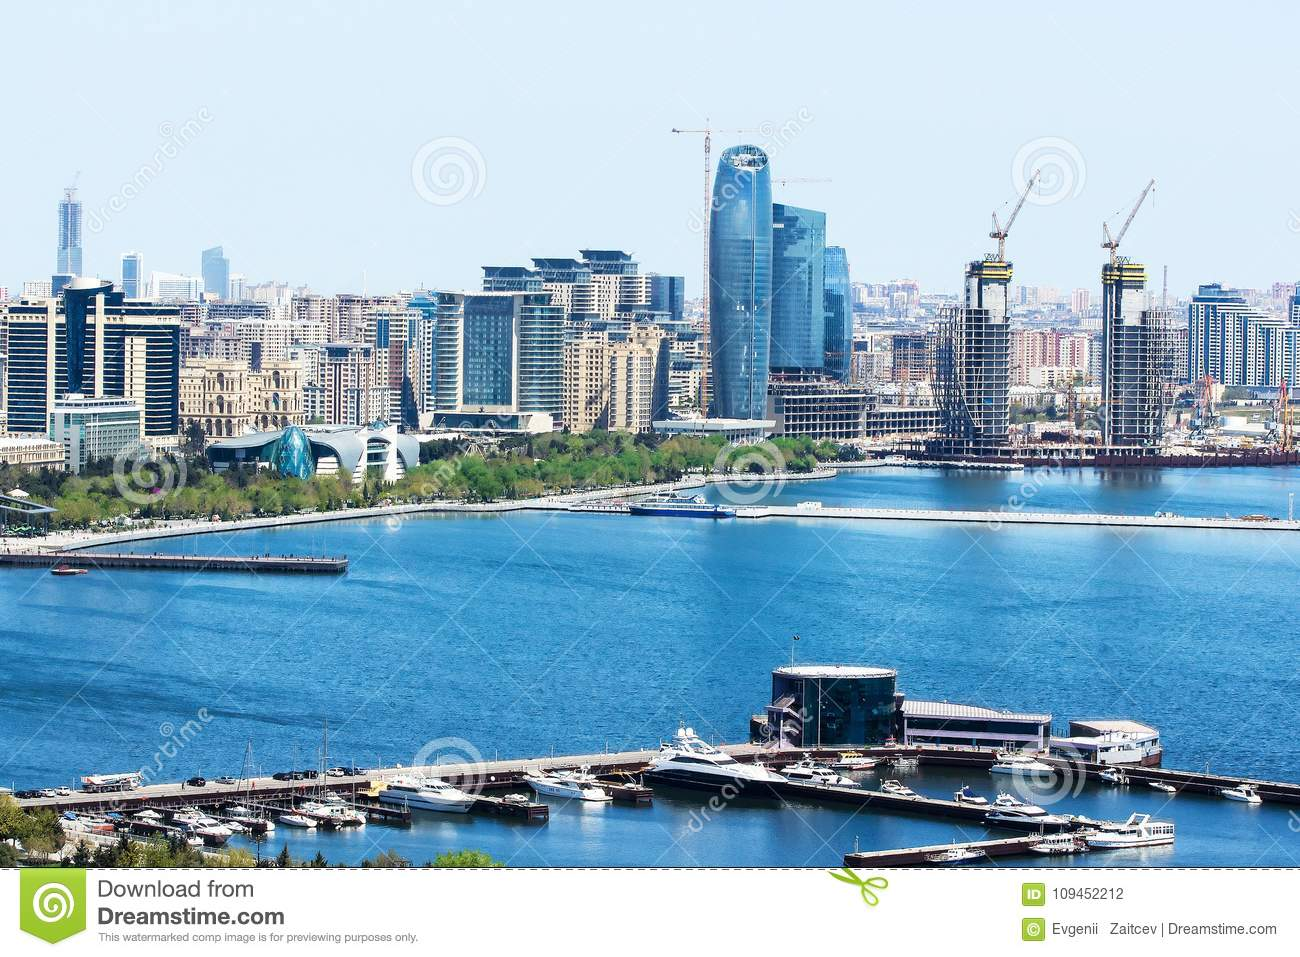 Scenic landscape of urban skyline Baku with numerous modern skyscrapers. Baku is the capital and largest city of Azerbaijan